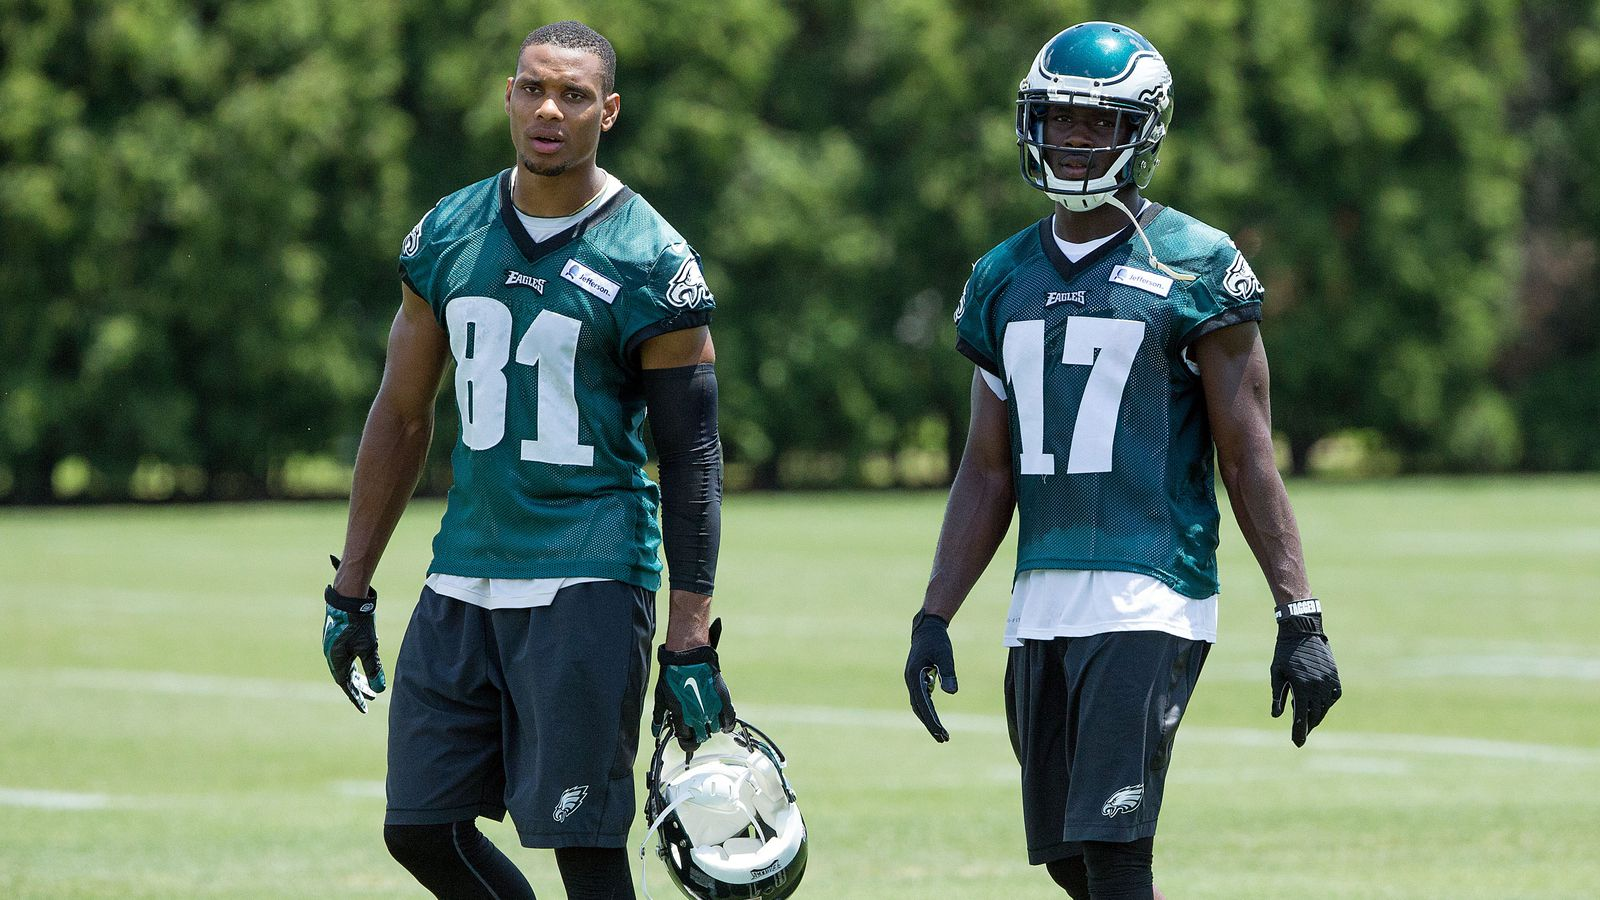 Nike jerseys for Cheap - Eagles News: Jordan Matthews is already serving as a mentor to NFL ...